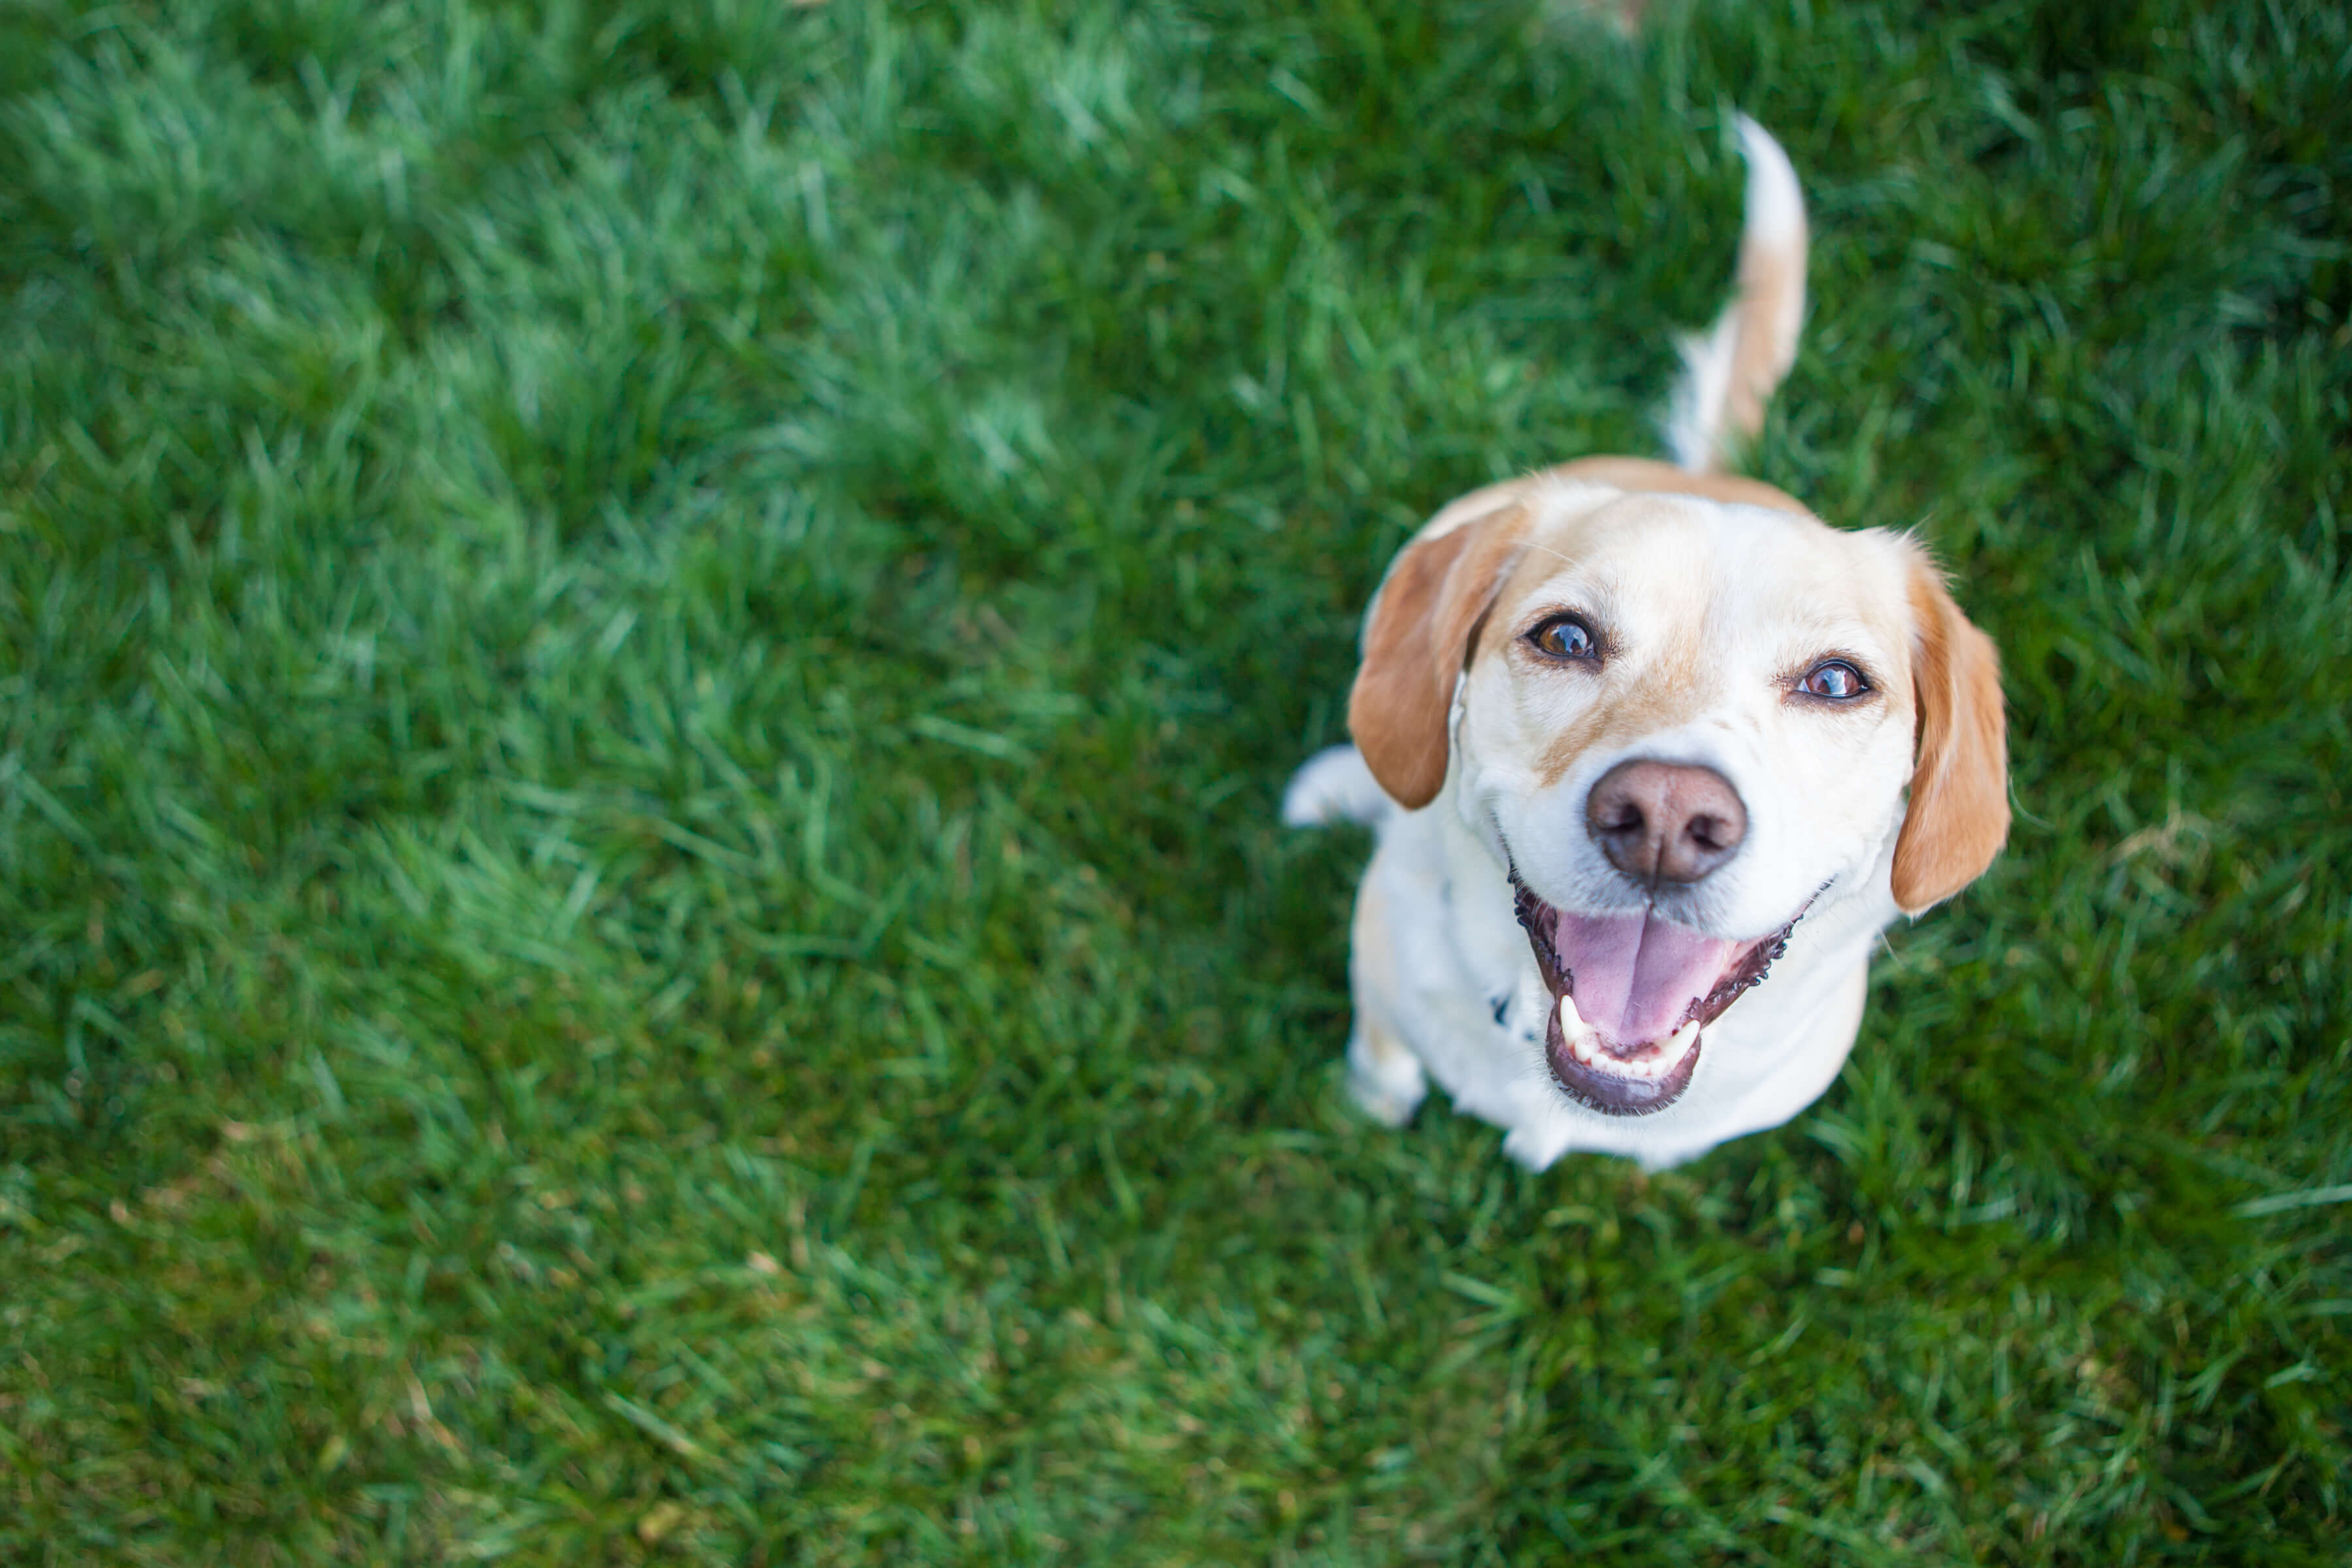 Ashwagandha for Dogs: a powerful herb that can promote relaxation in dogs.